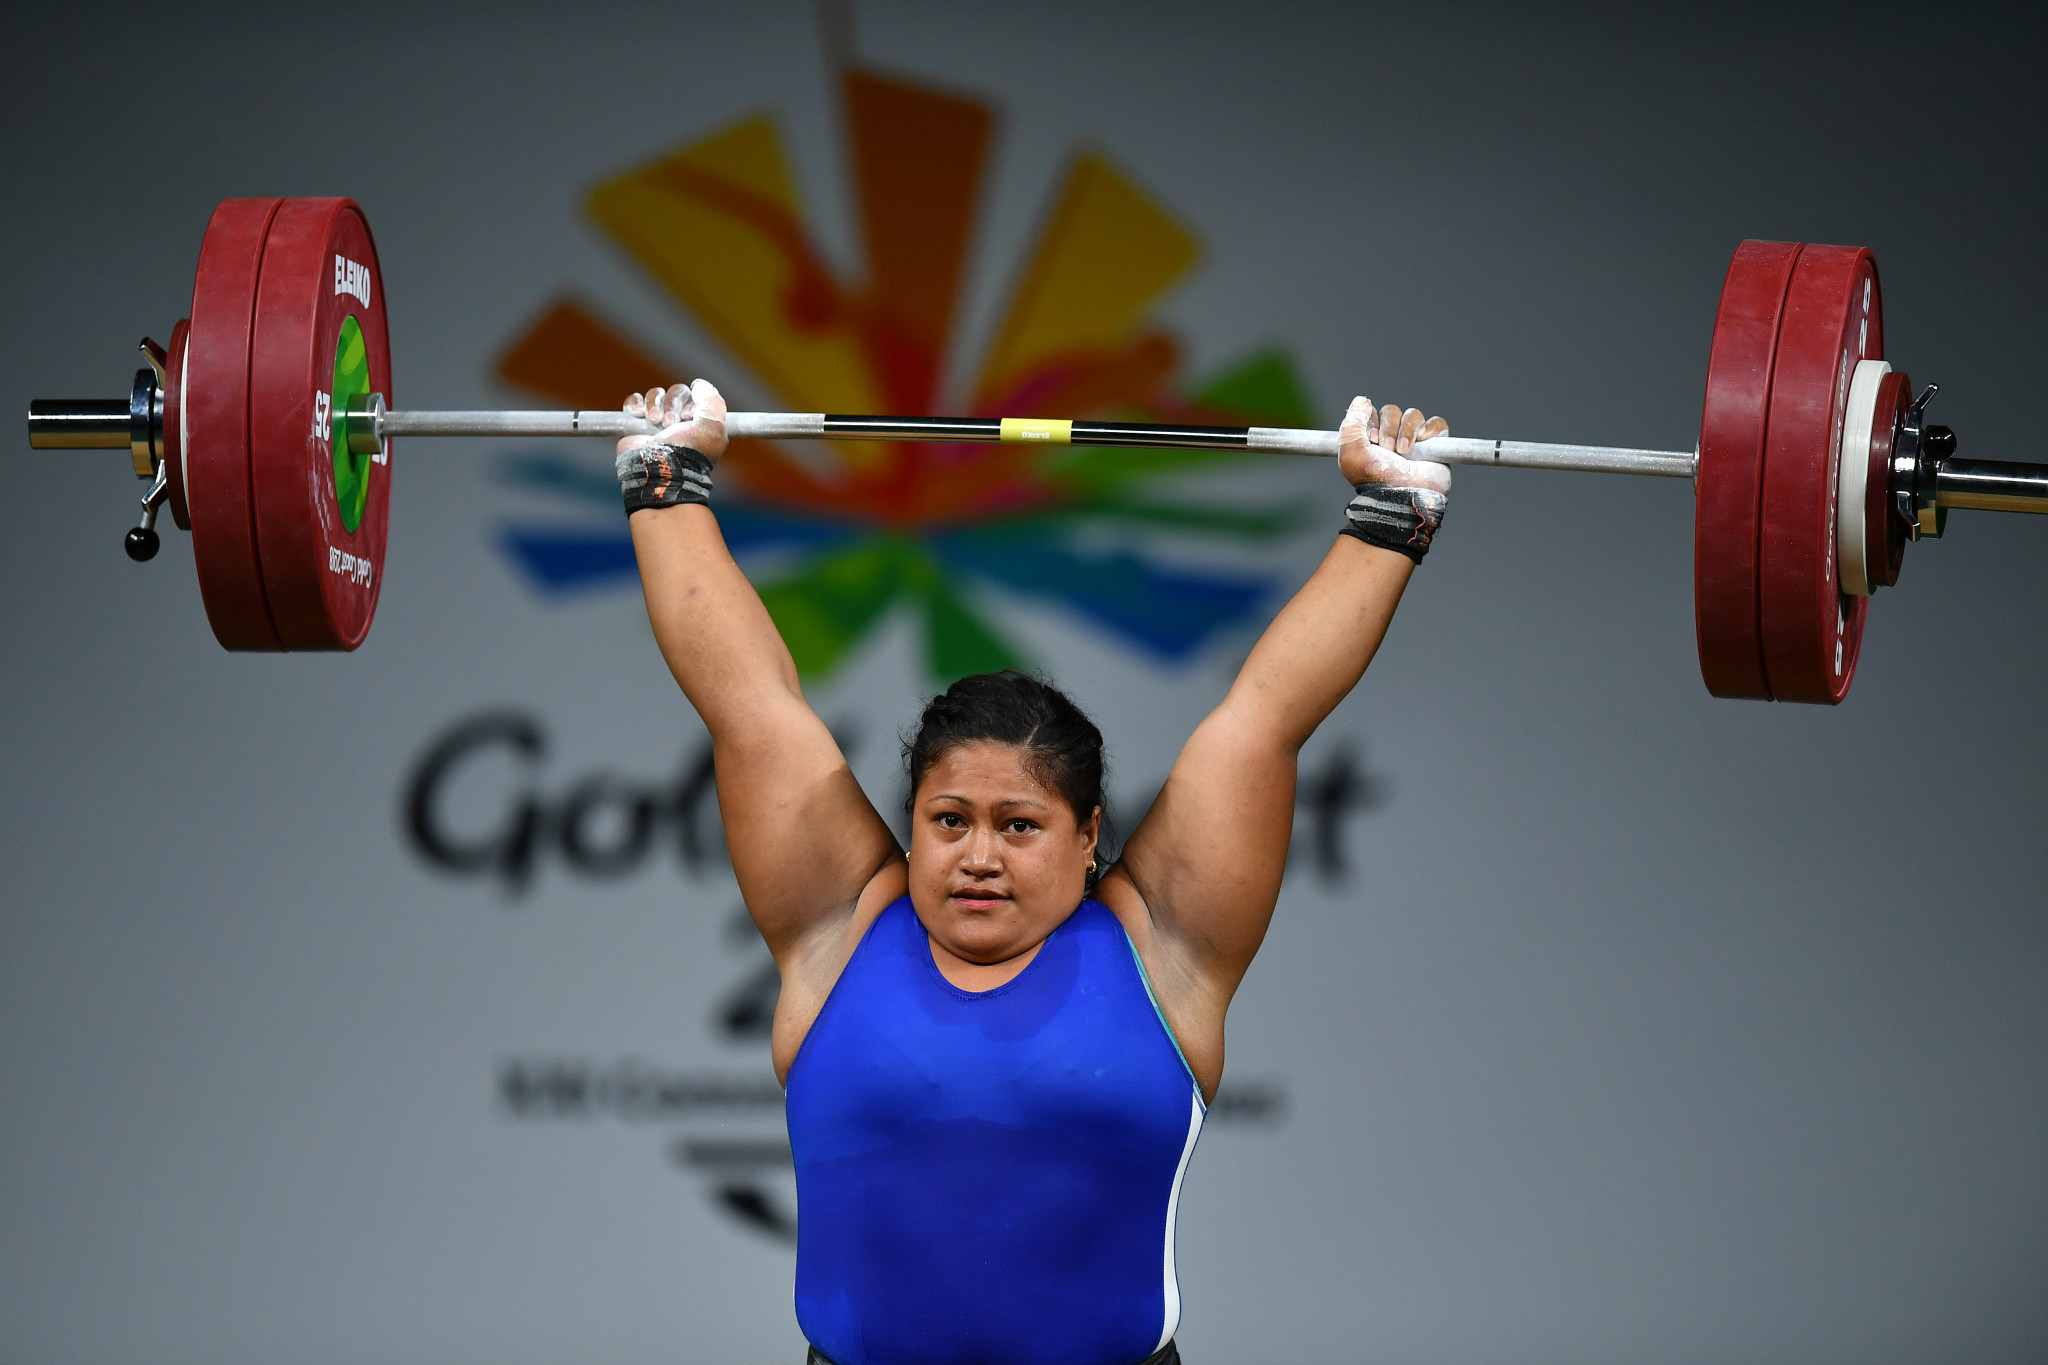 Samoan teenager wins weightlifting gold after transgender athlete Hubbard's withdrawal at Gold Coast 2018